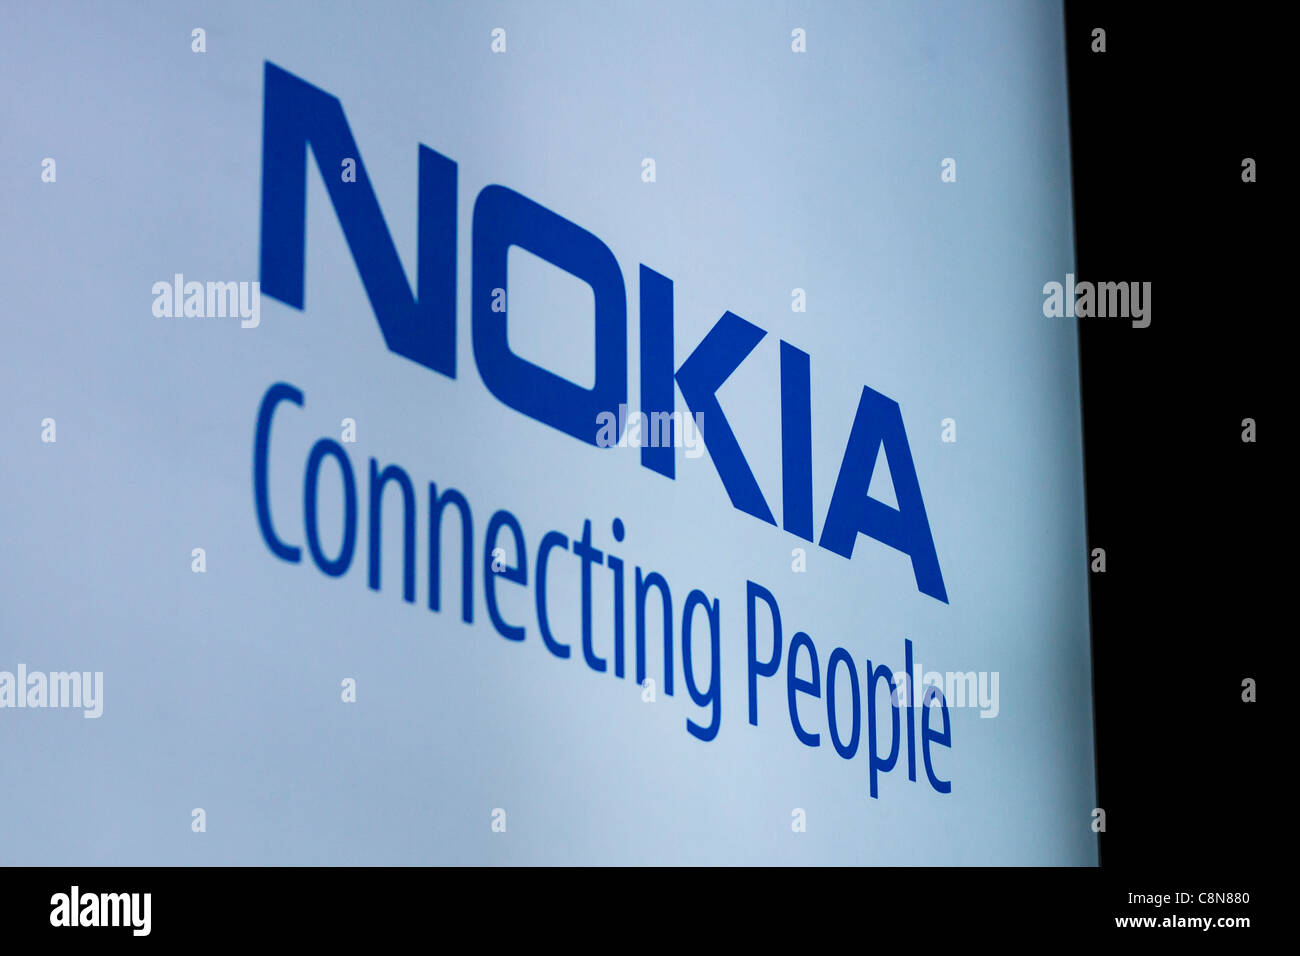 Detail of Nokia sign. - Stock Image